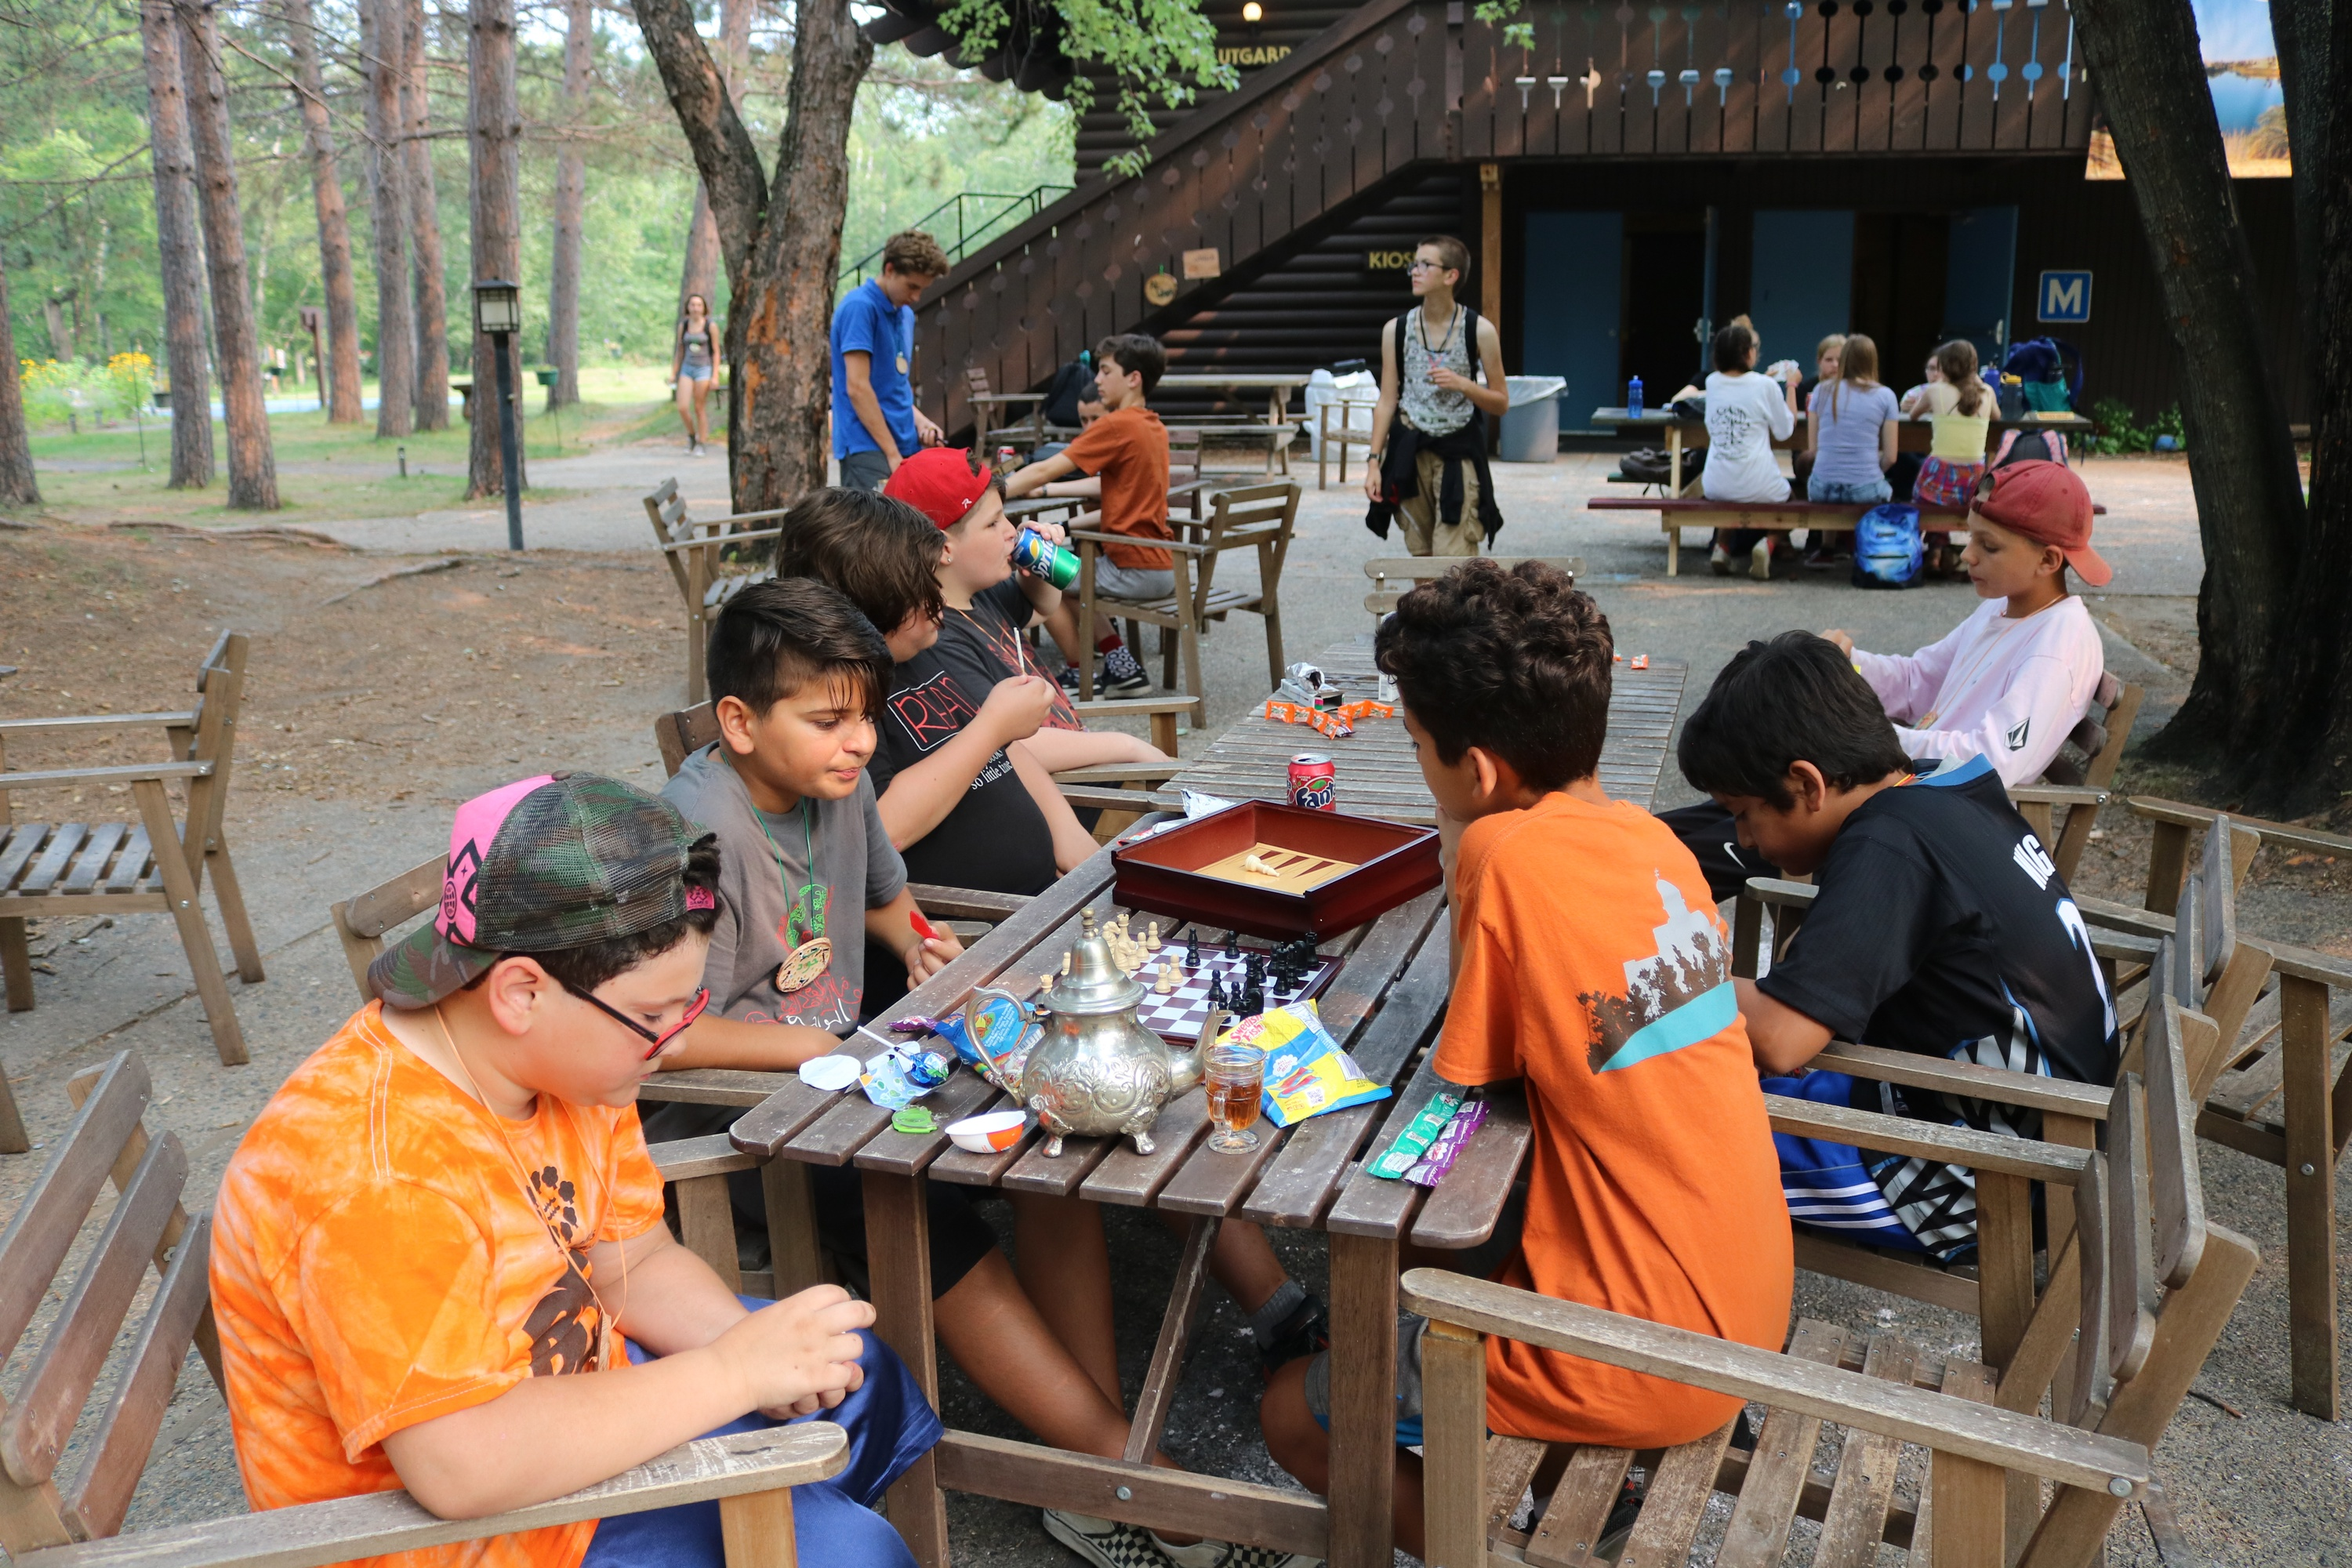 Villagers sitting at a table drinking mint tea and playing chess.